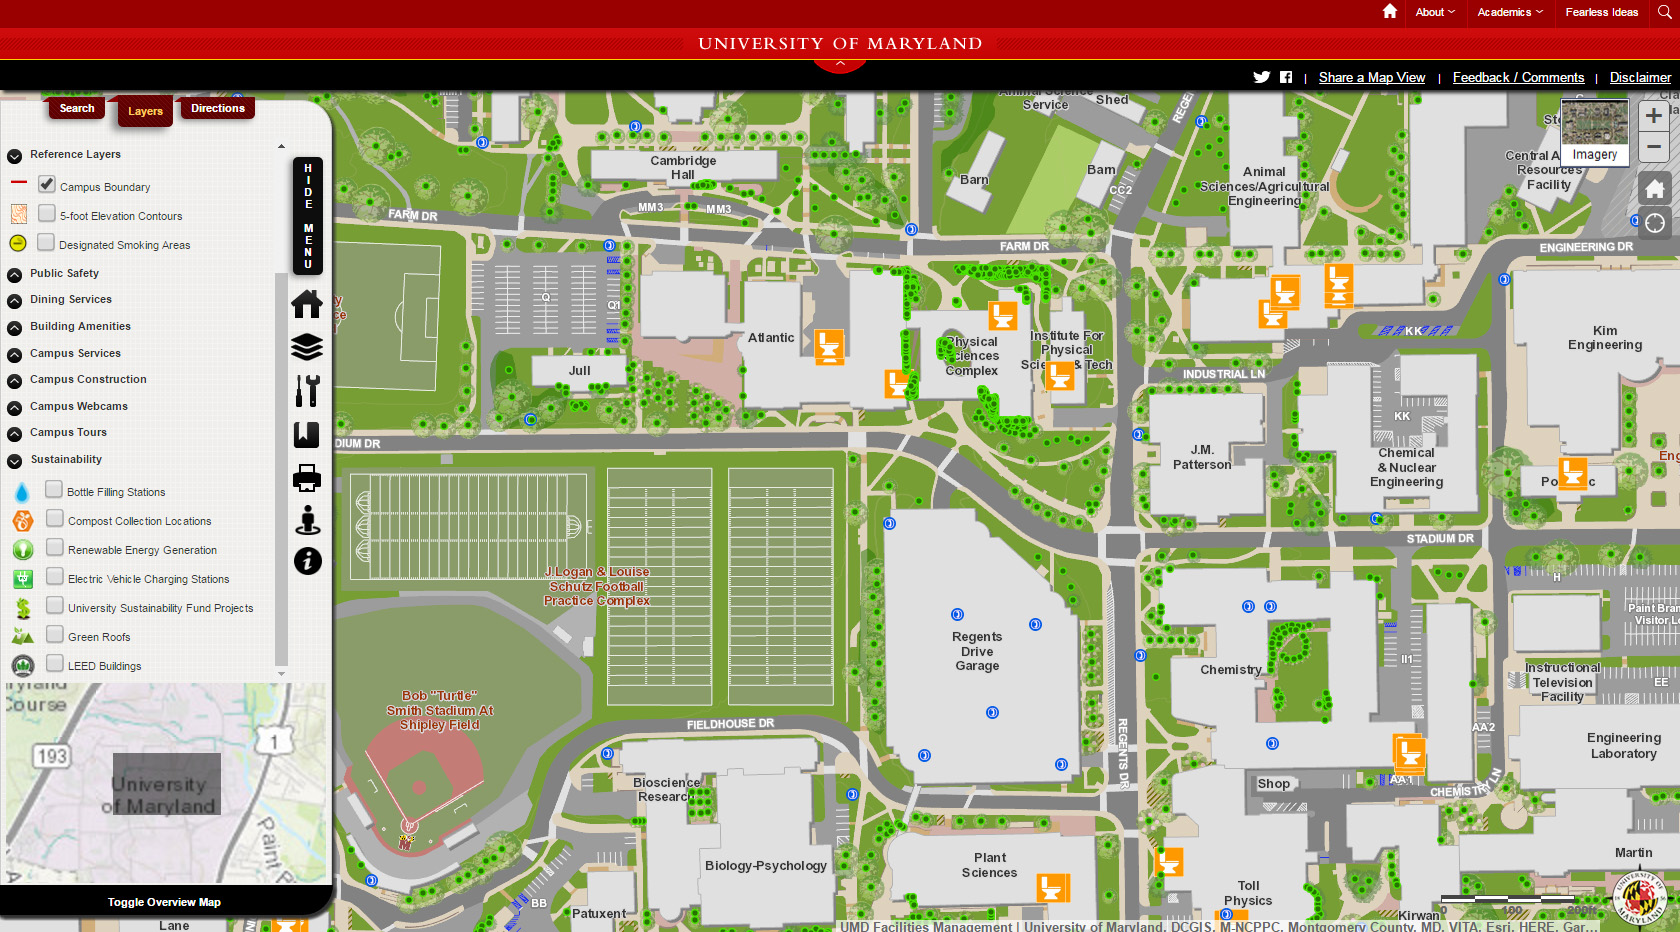 Temple University Map Excellent Examples of University Campus Maps | Temple PSM in GIS Temple University Map